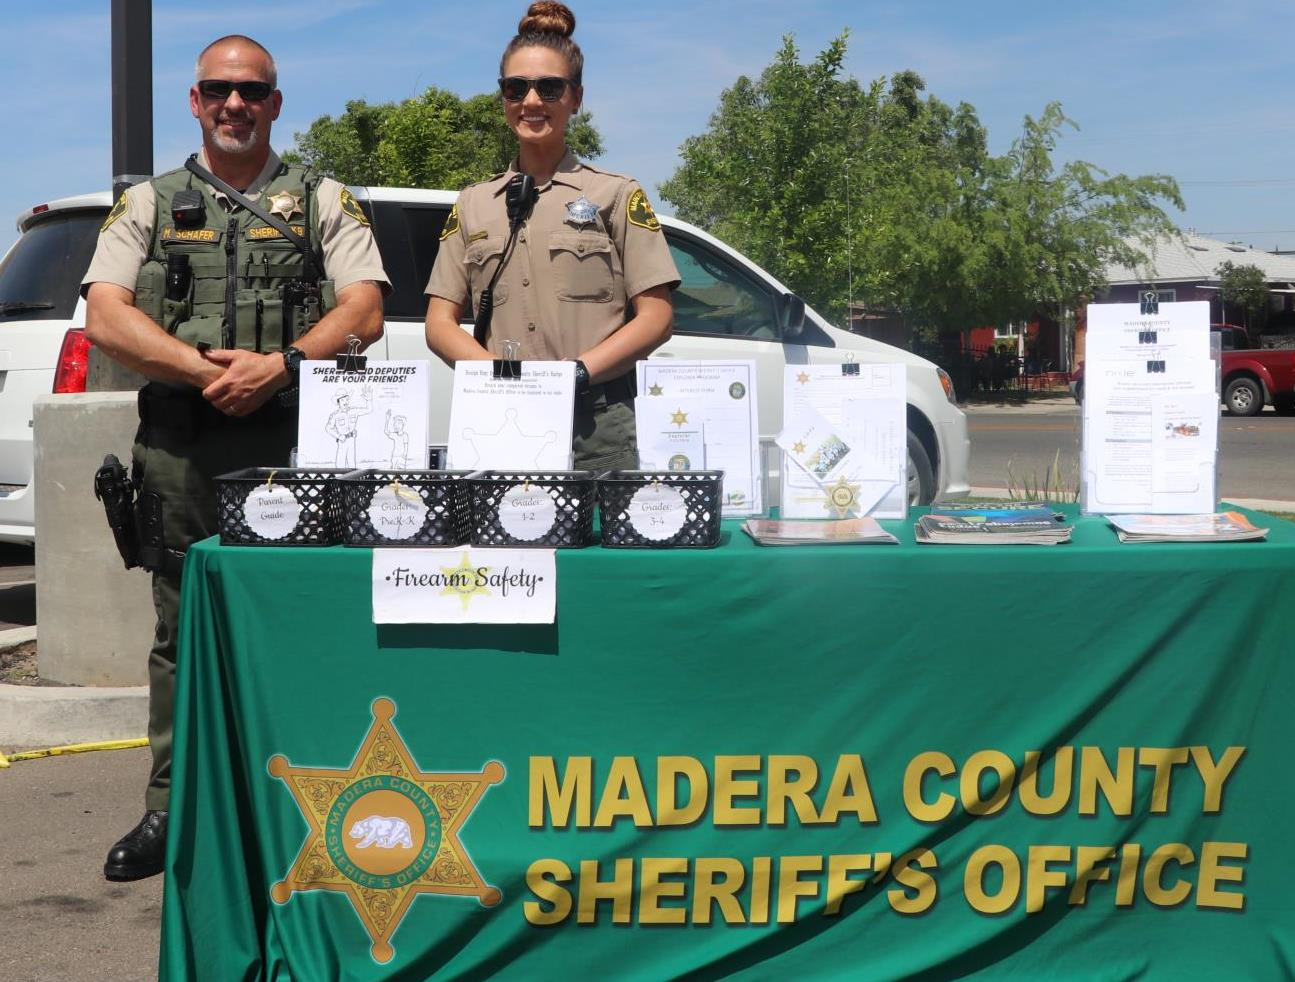 Madera County Sherriff was one of several agencies and vendors at Fruit and Veggie Fest 2018